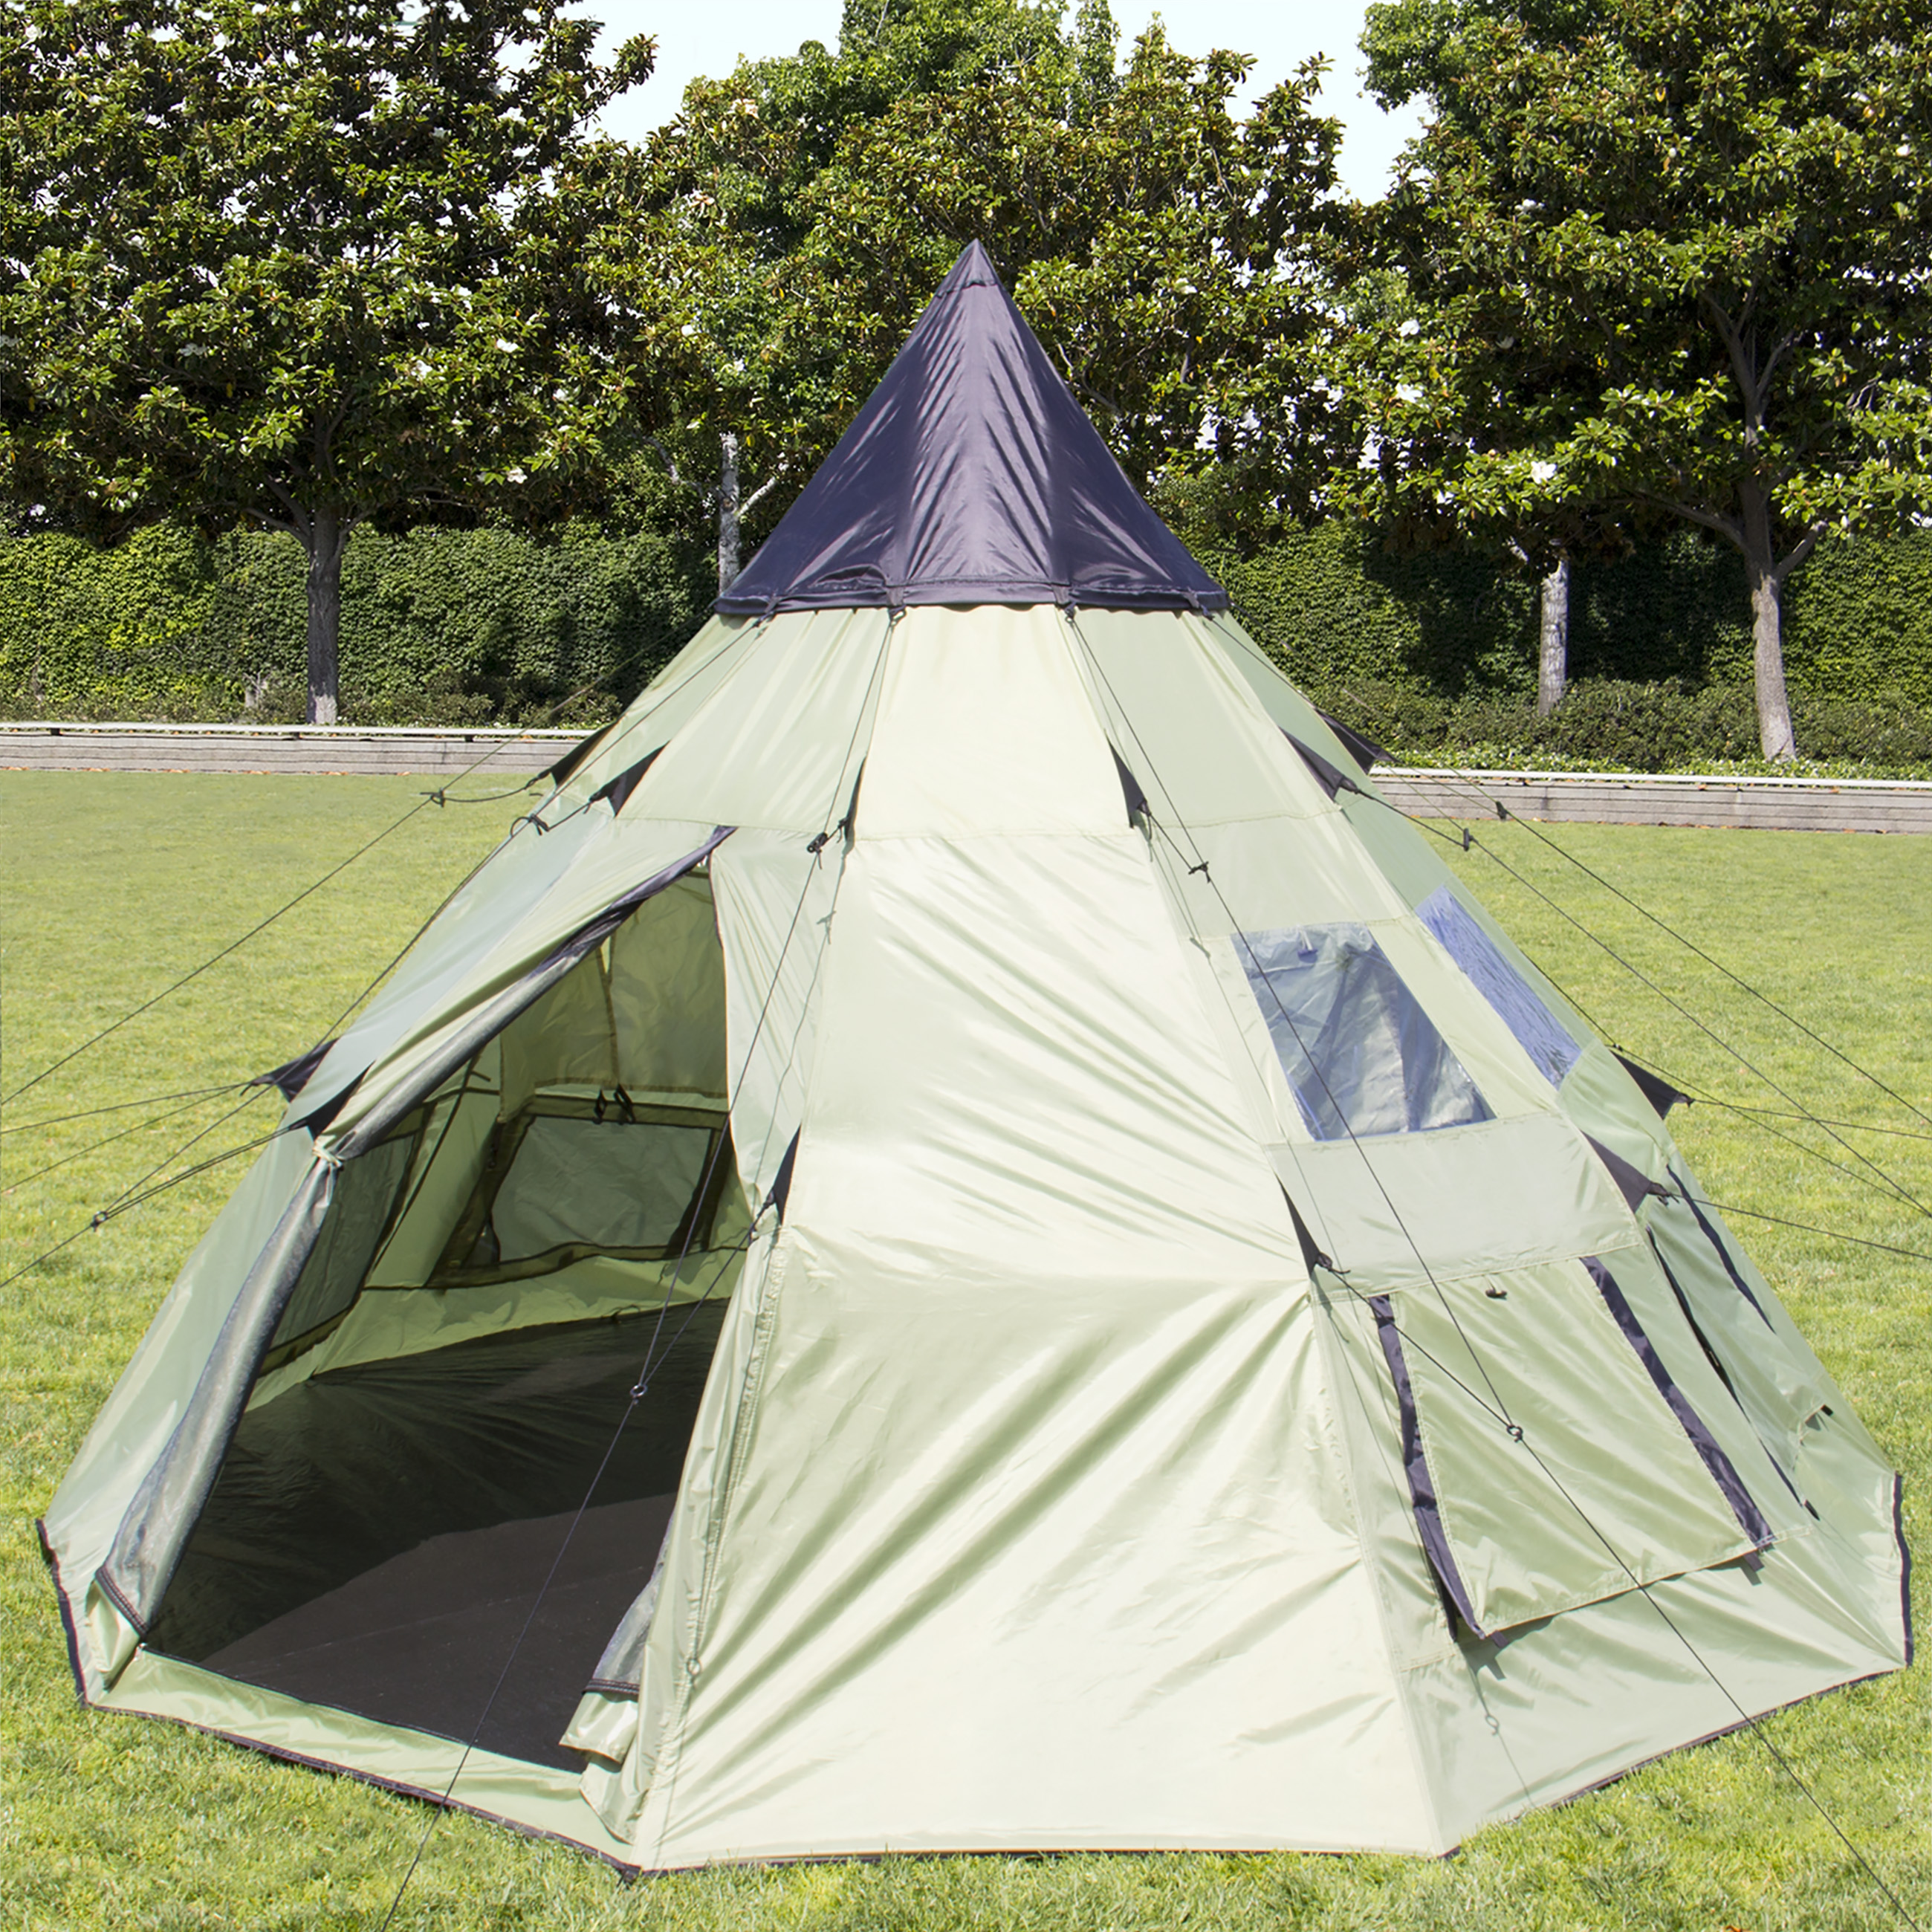 Best Choice Products BCP 10x10 Teepee Camping Tent